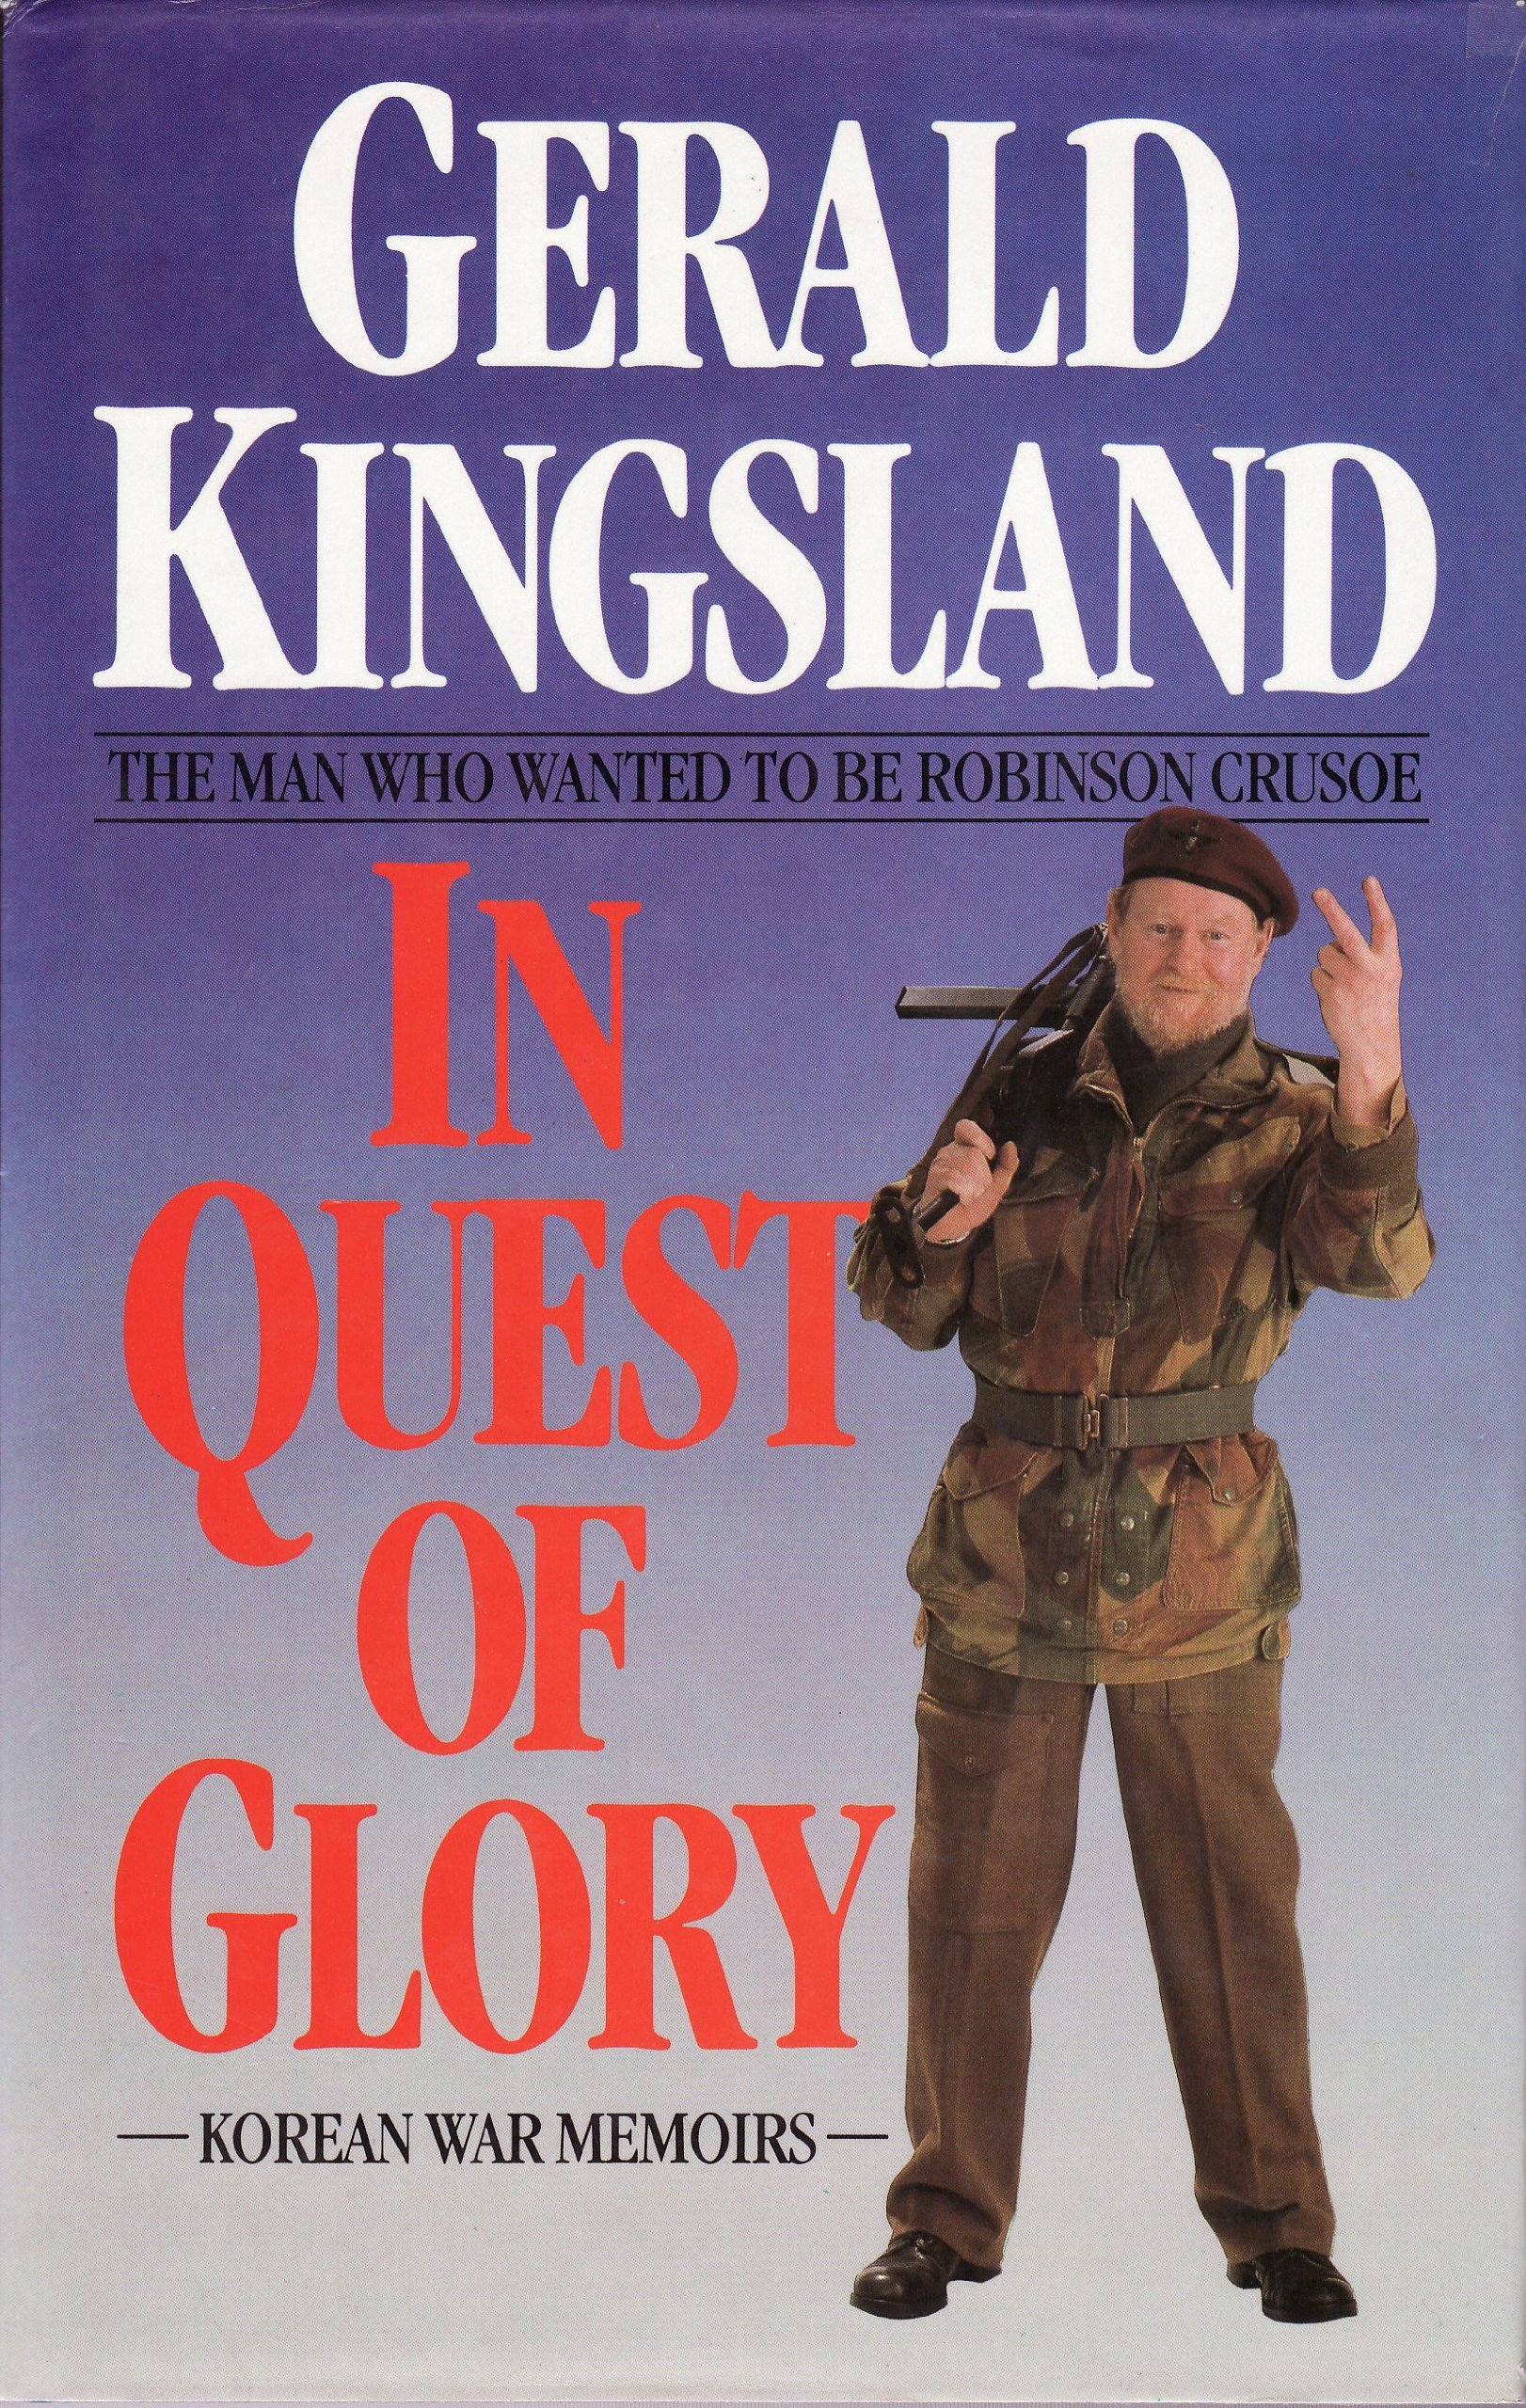 In Quest of Glory